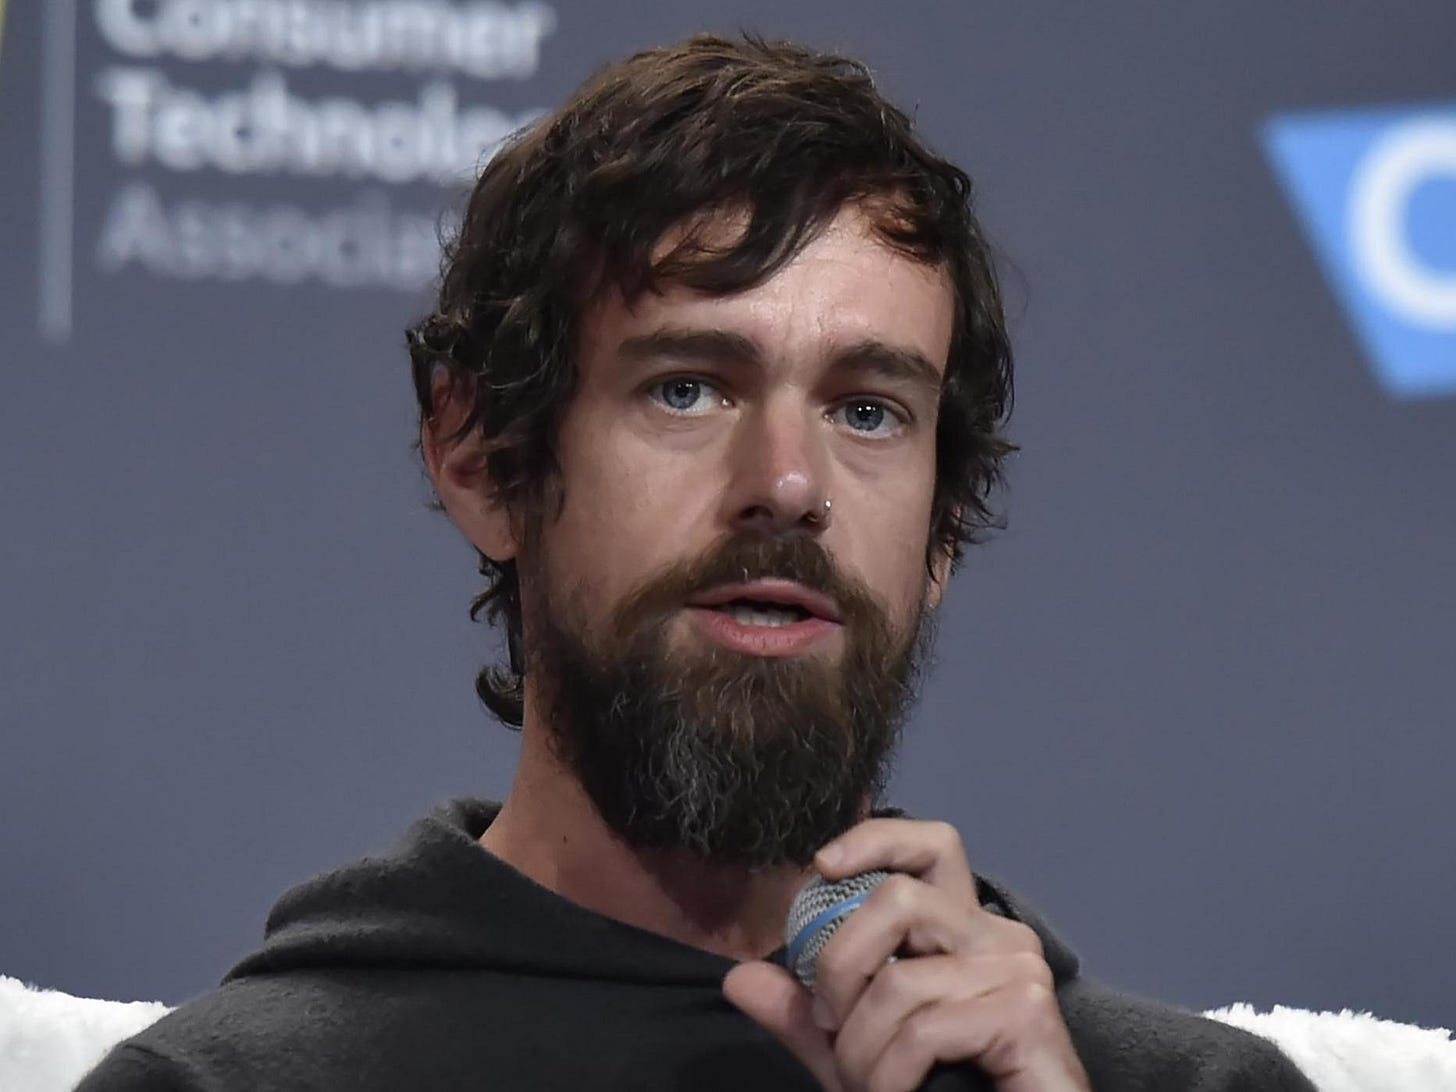 Twitter CEO Jack Dorsey donates $3M to UBI experiment   The Independent    The Independent